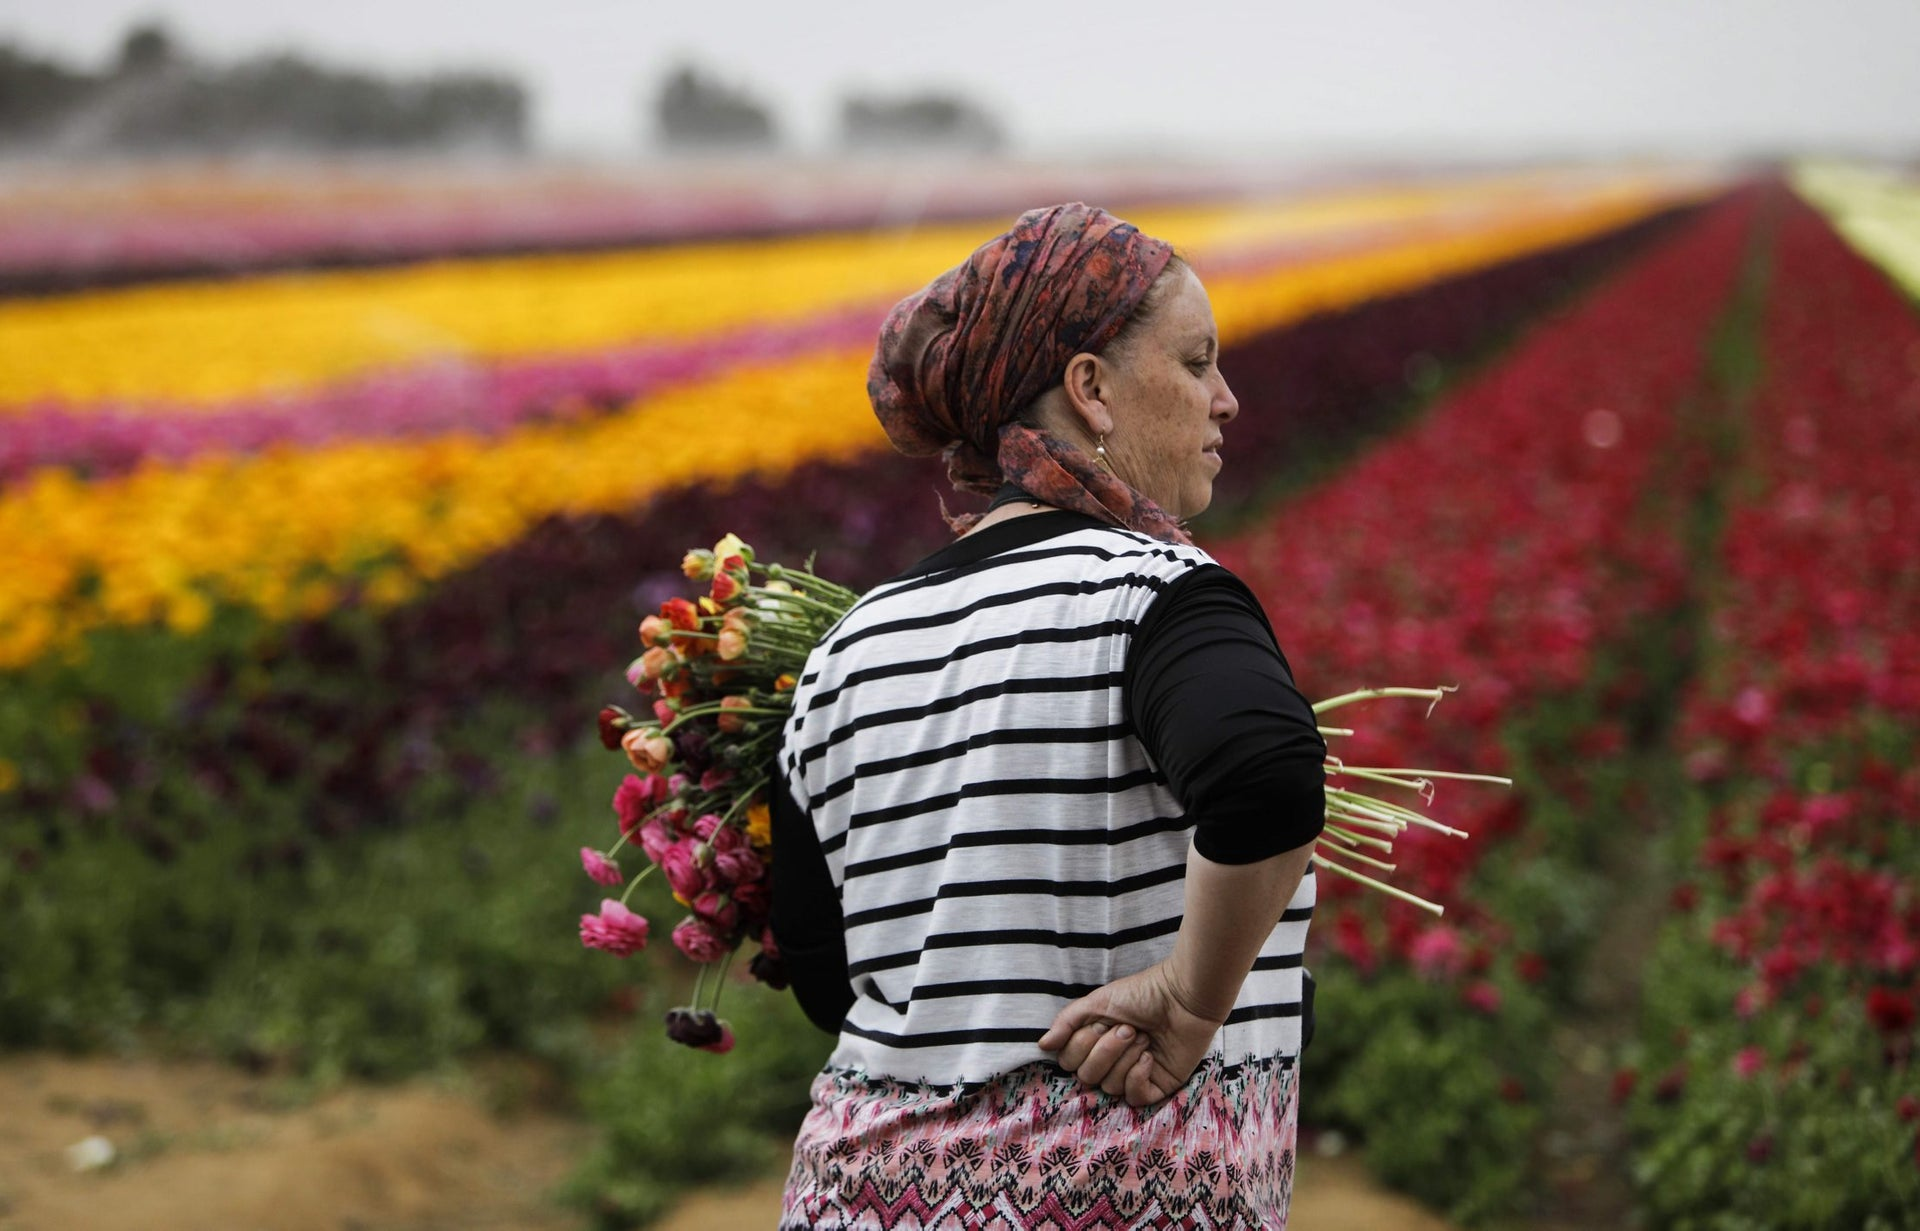 An Israeli woman holds a pack of flowers as she enjoys the Ranunculus flowers in a field in the southern Israeli Kibbutz of Nir Yitzhak, located along the Israeli-Gaza Strip border, during the Jewish holiday of Pesach (Passover) on April 12, 2017.